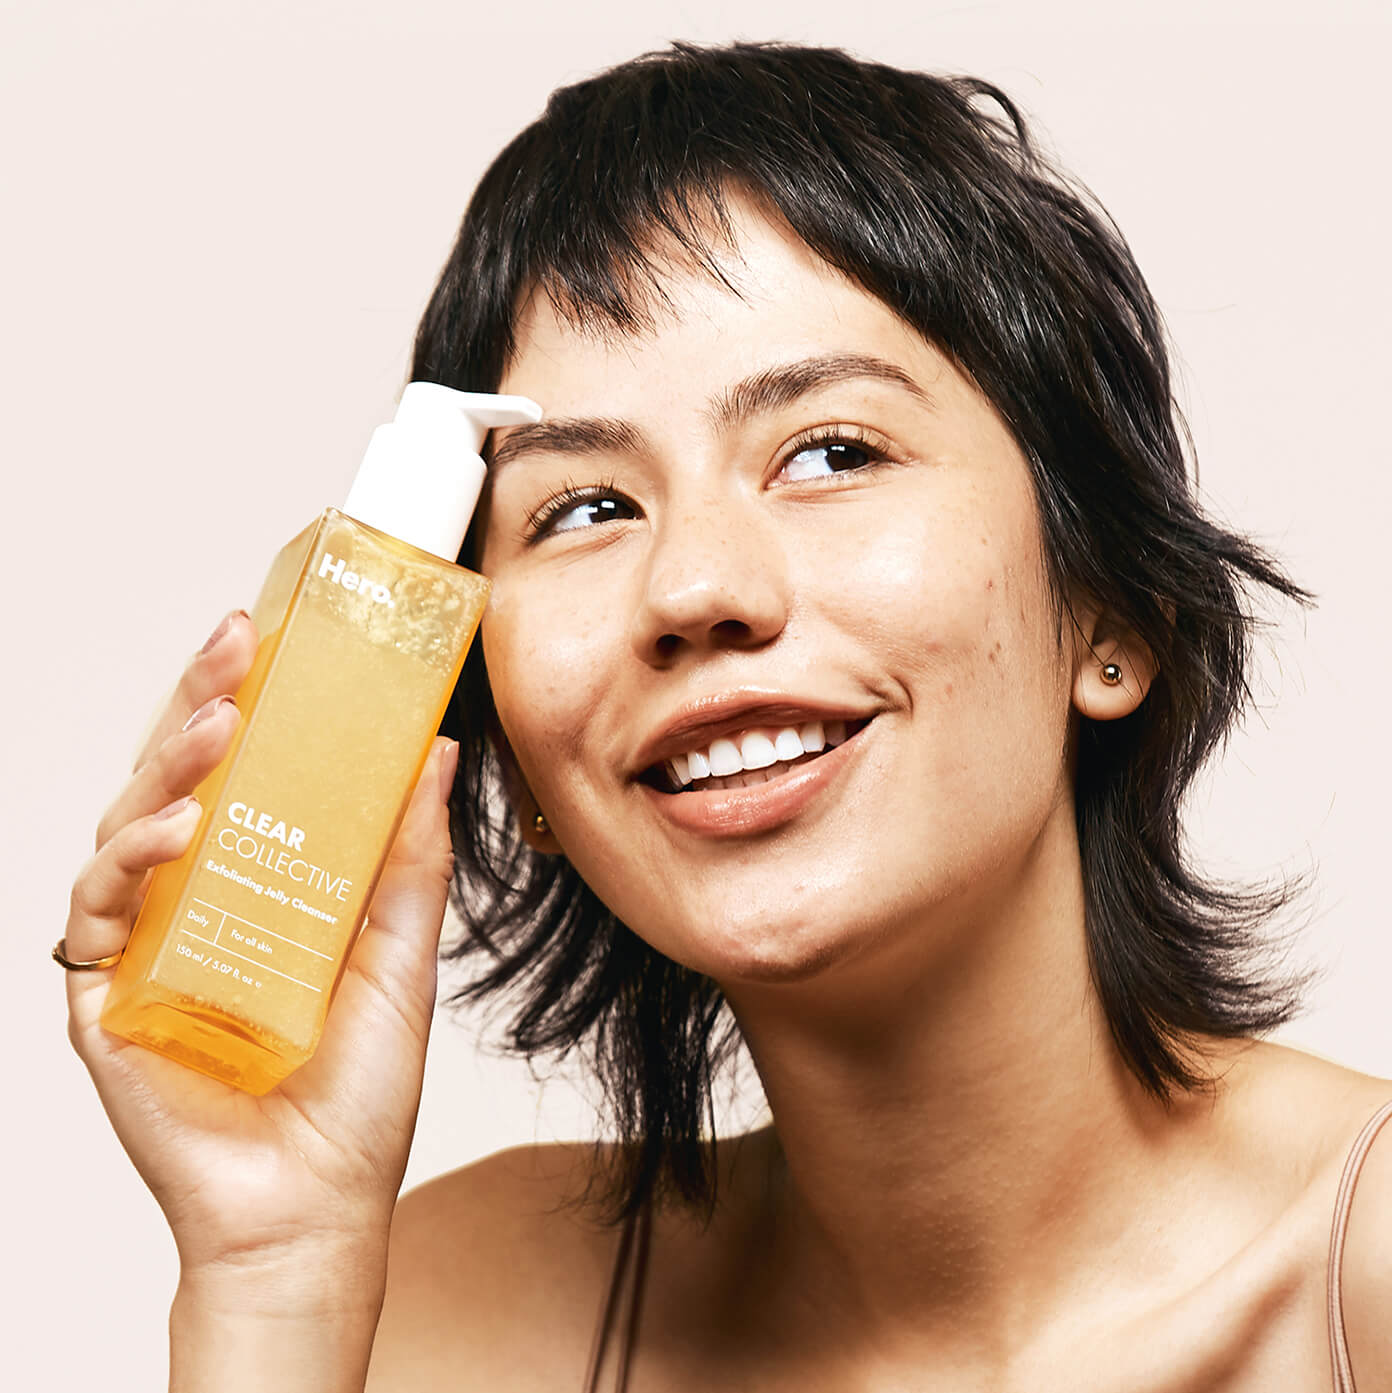 Model holding Clear Collective Exfoliating Jelly Cleanser